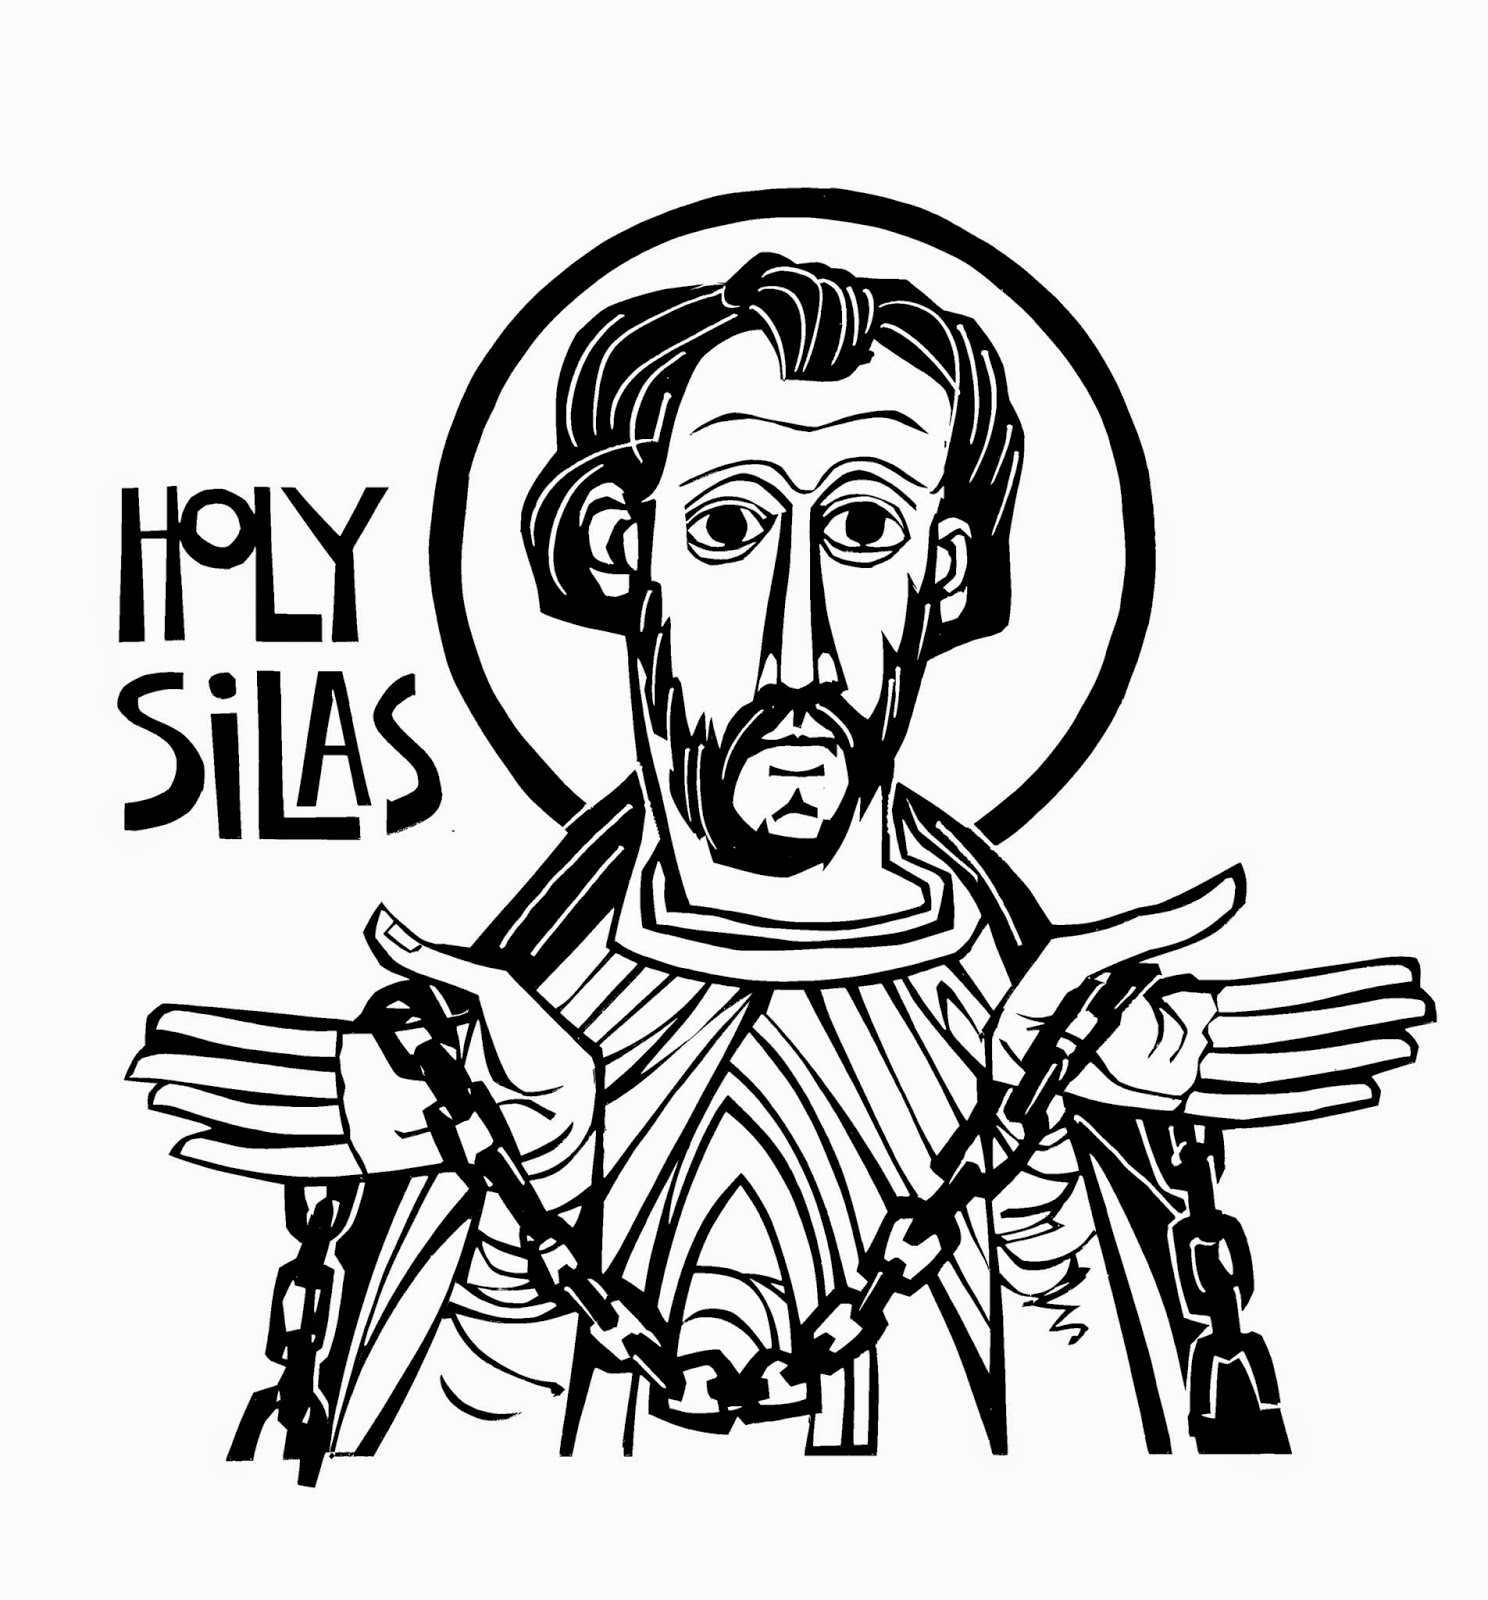 From Season to Season: Behind the Scenes with Saint Silas